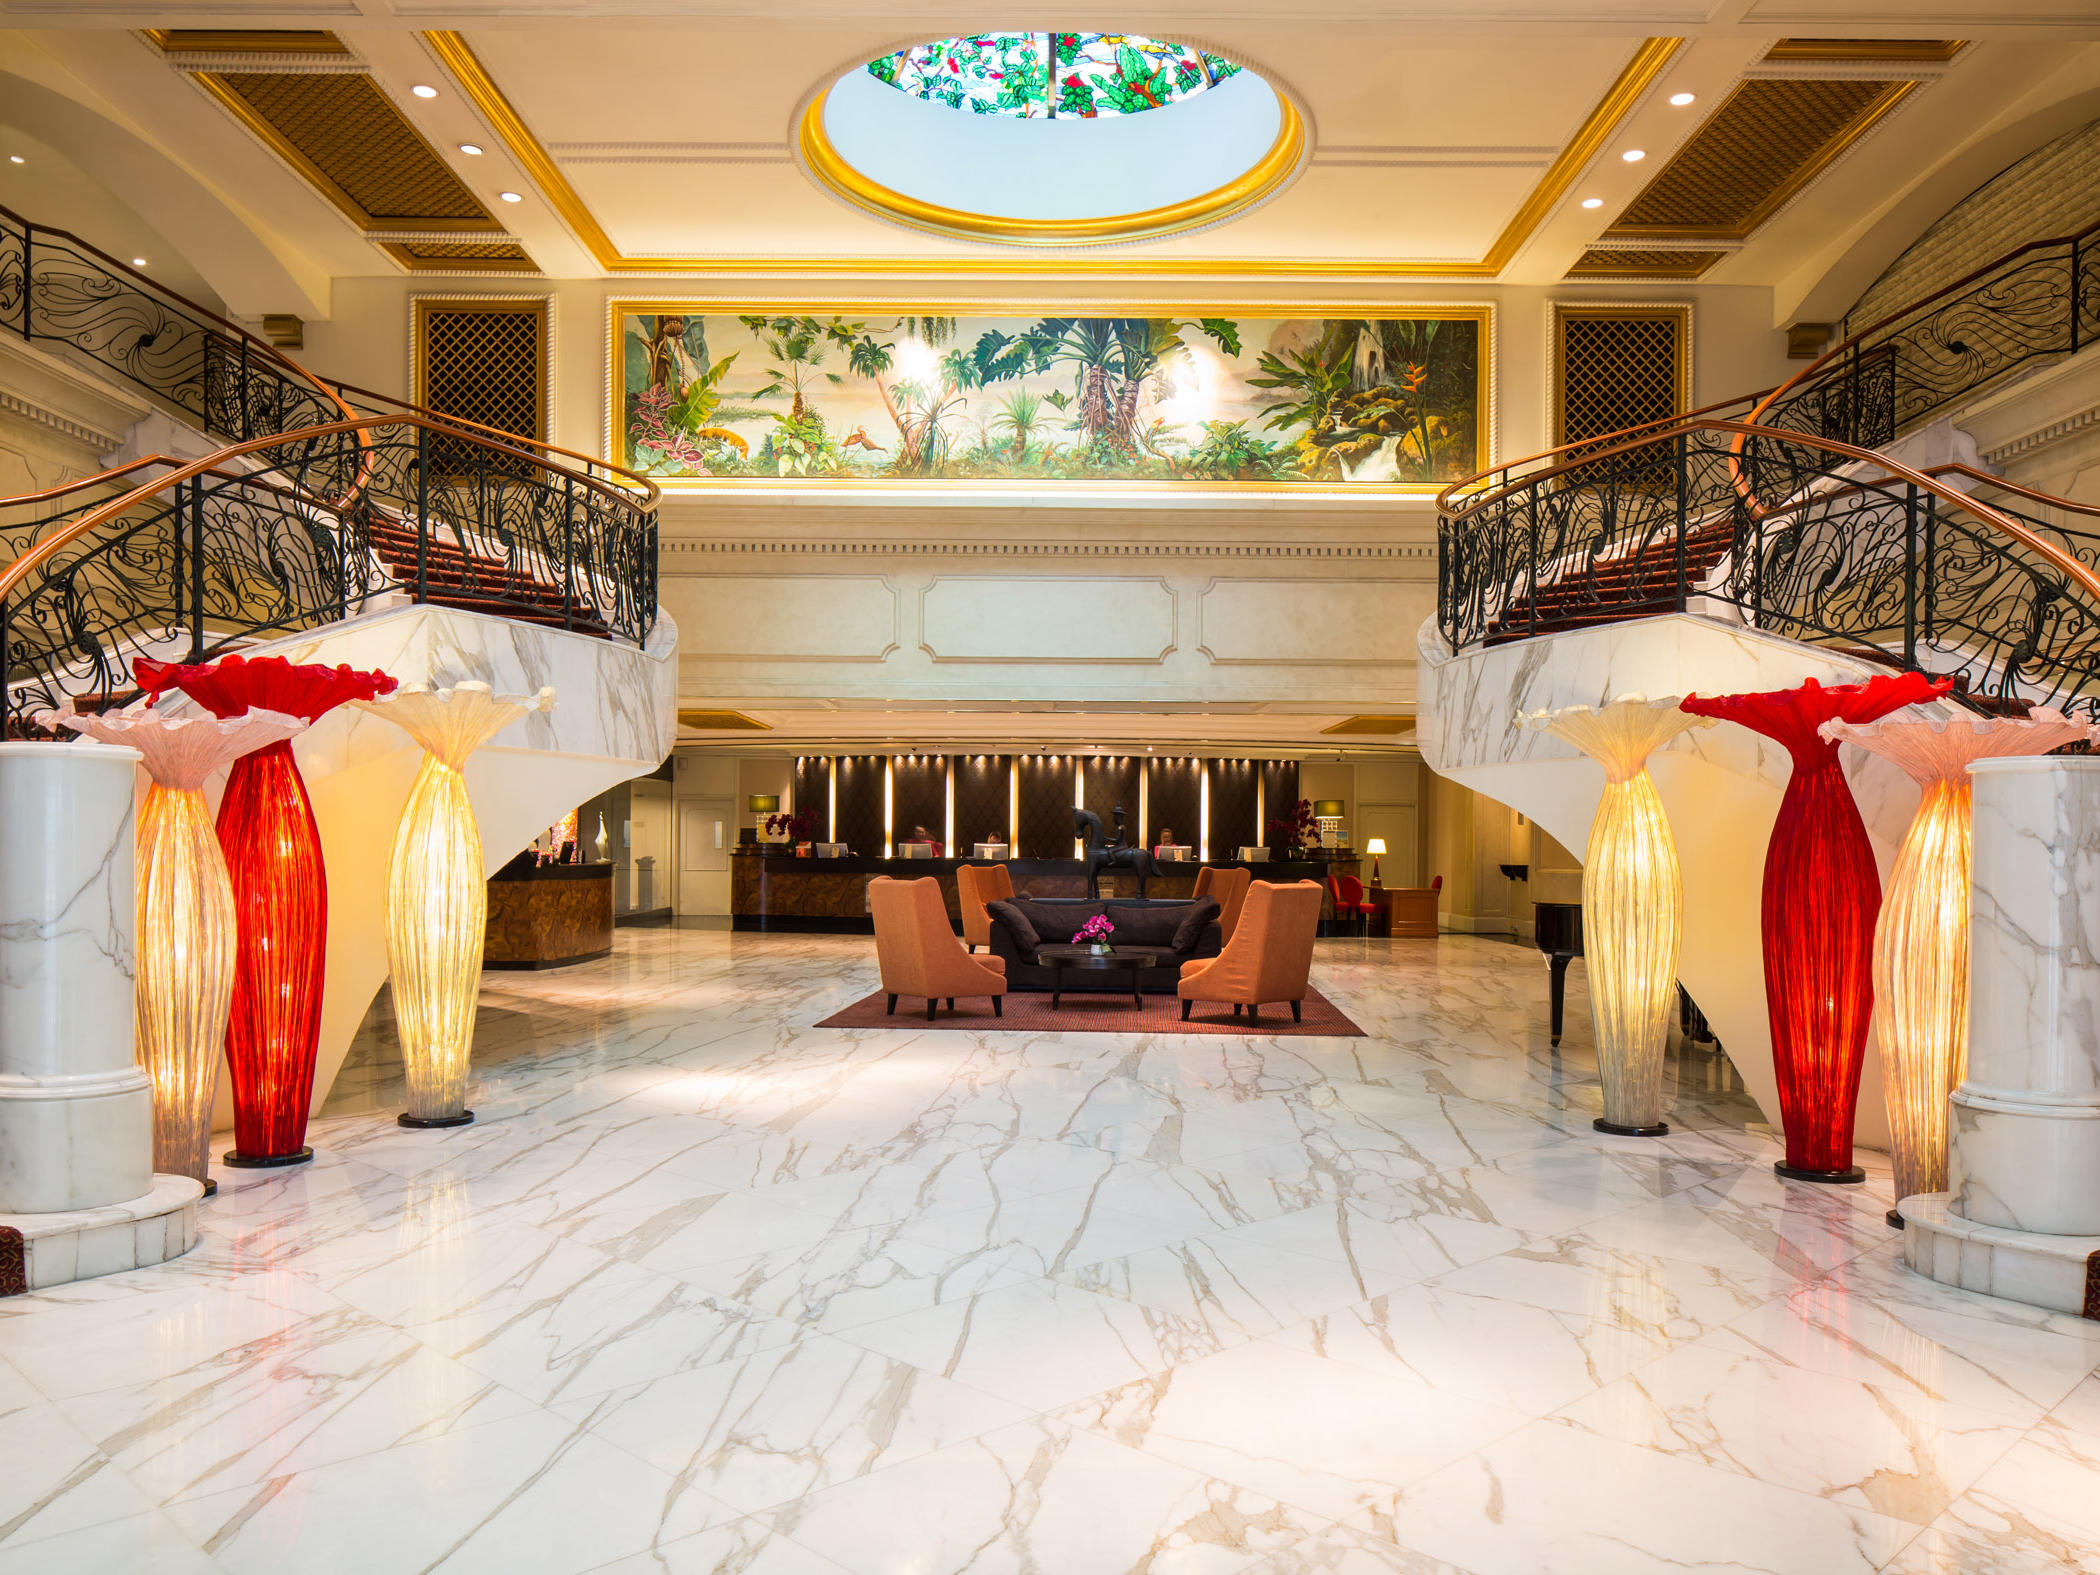 Lobby area in the Royal Plaza on Scotts Singapore